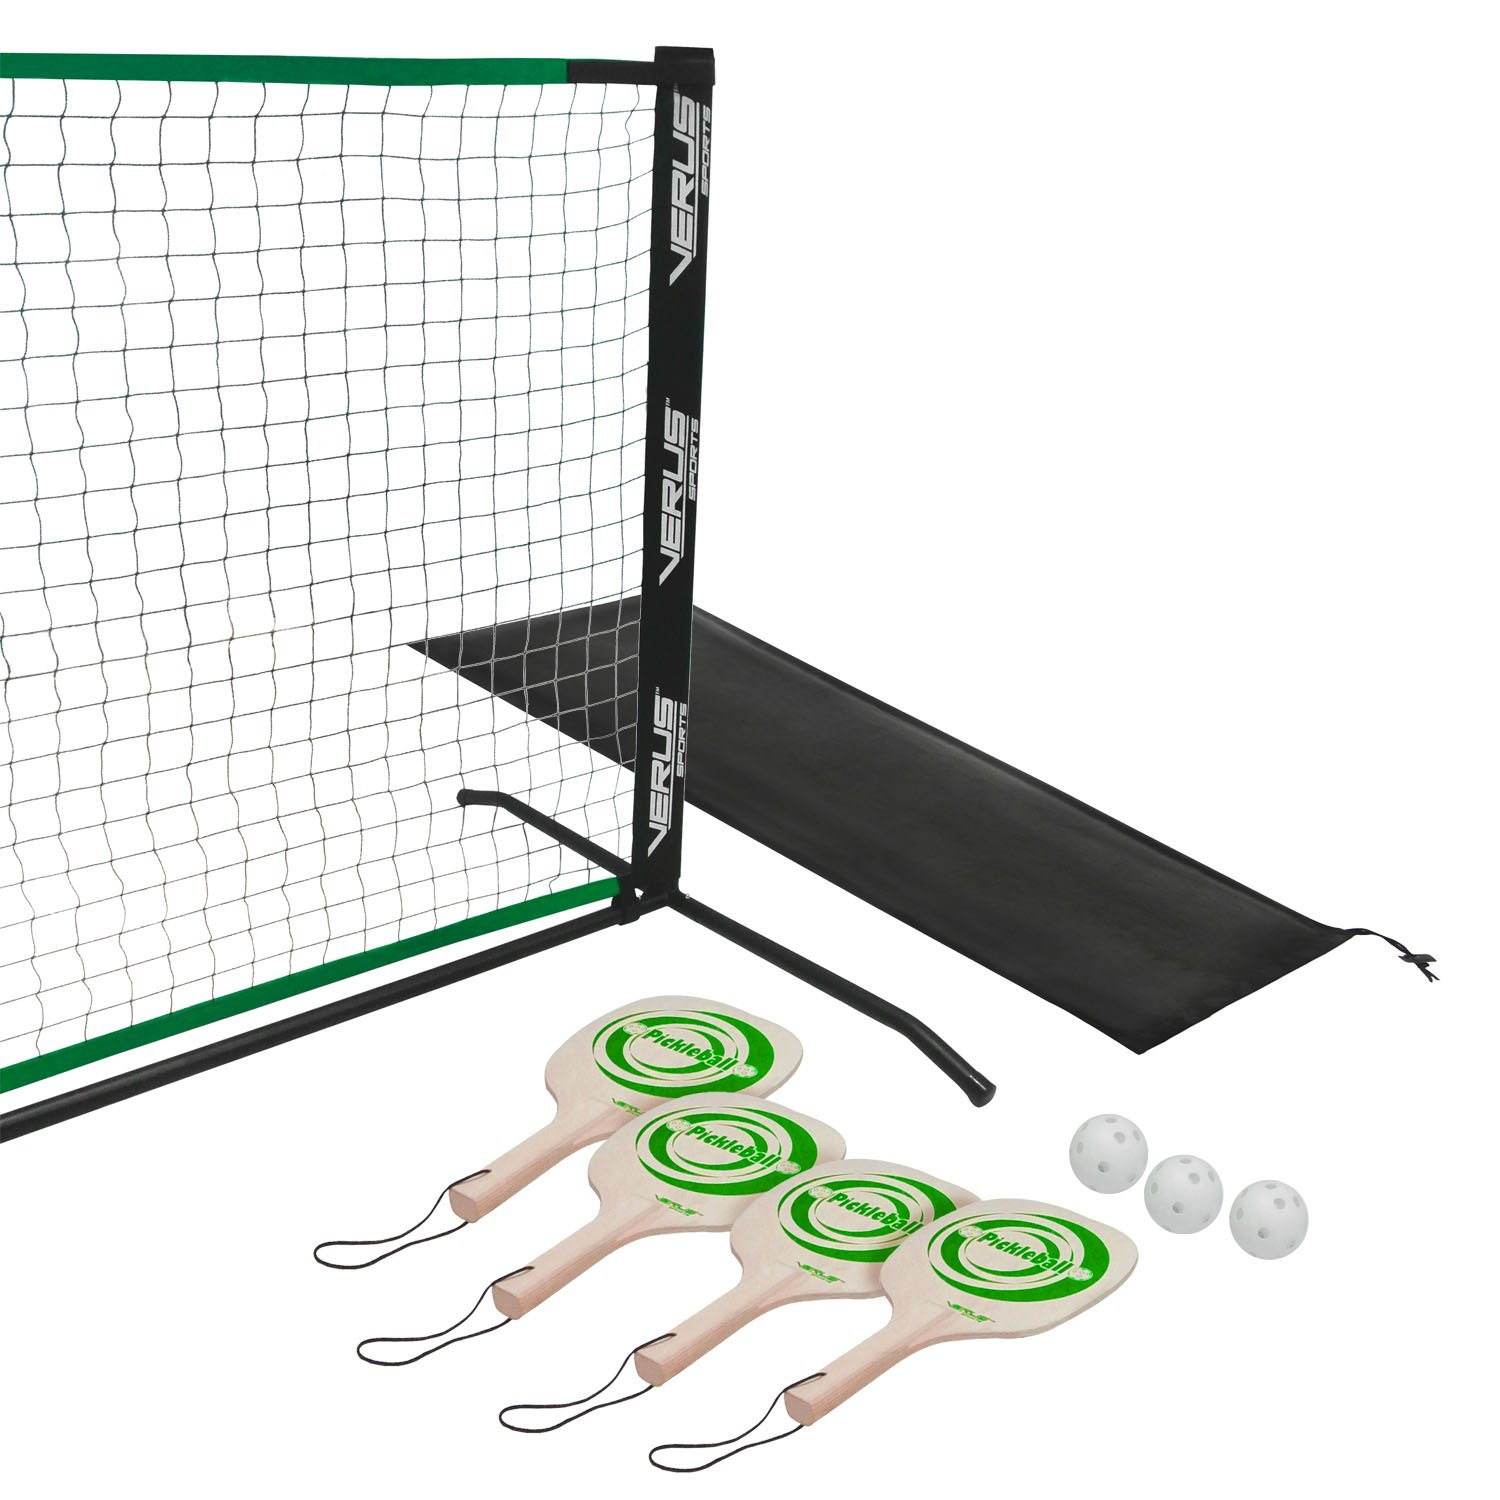 Verus Sports TG415 Deluxe Portable Pickleball Set (Includes 4 Pickleball Paddles, Balls and Net) by Verus Sports